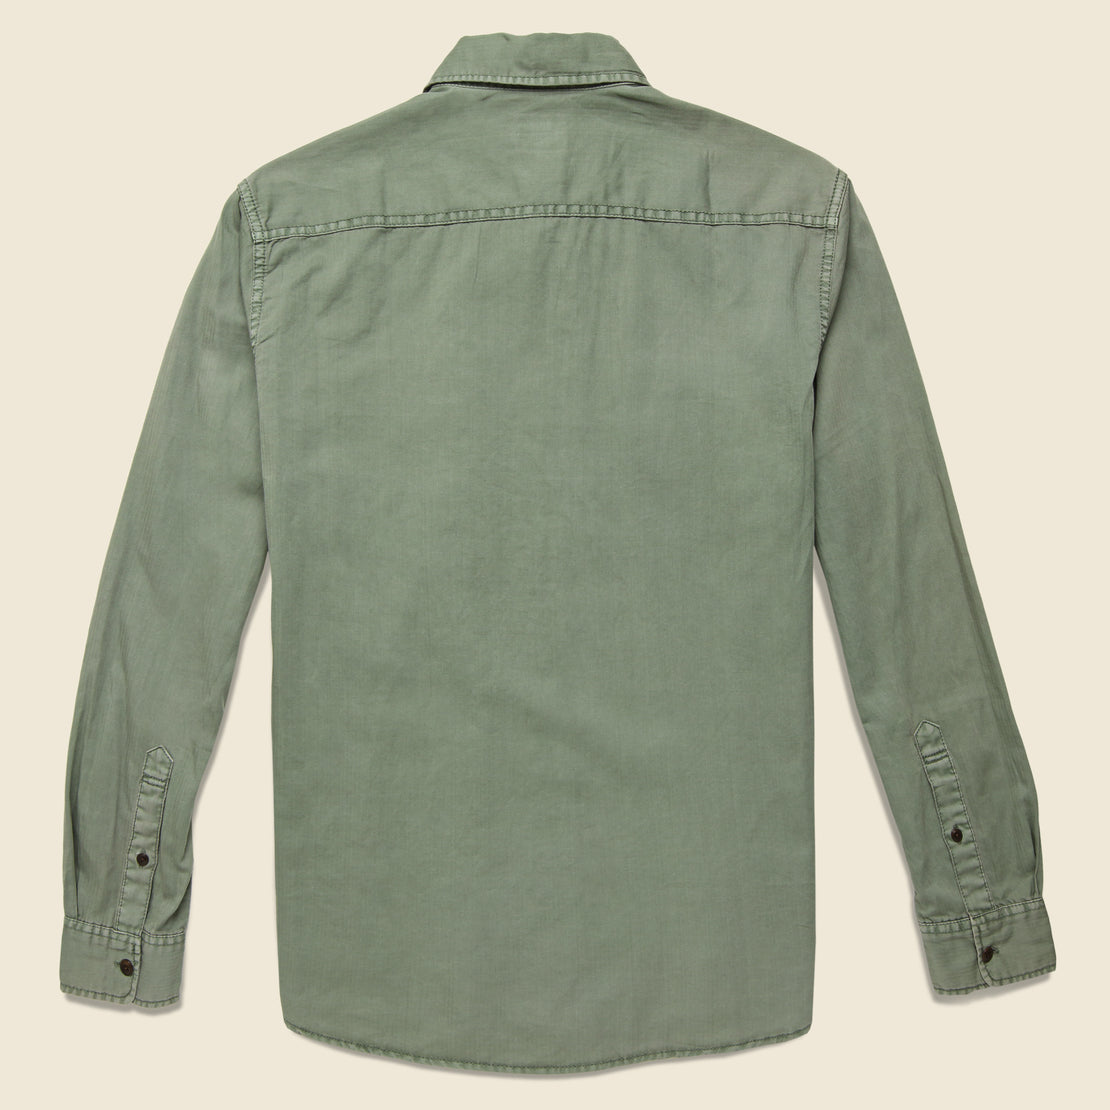 Washed Chino Shirt - Olive - Faherty - STAG Provisions - Tops - L/S Woven - Solid